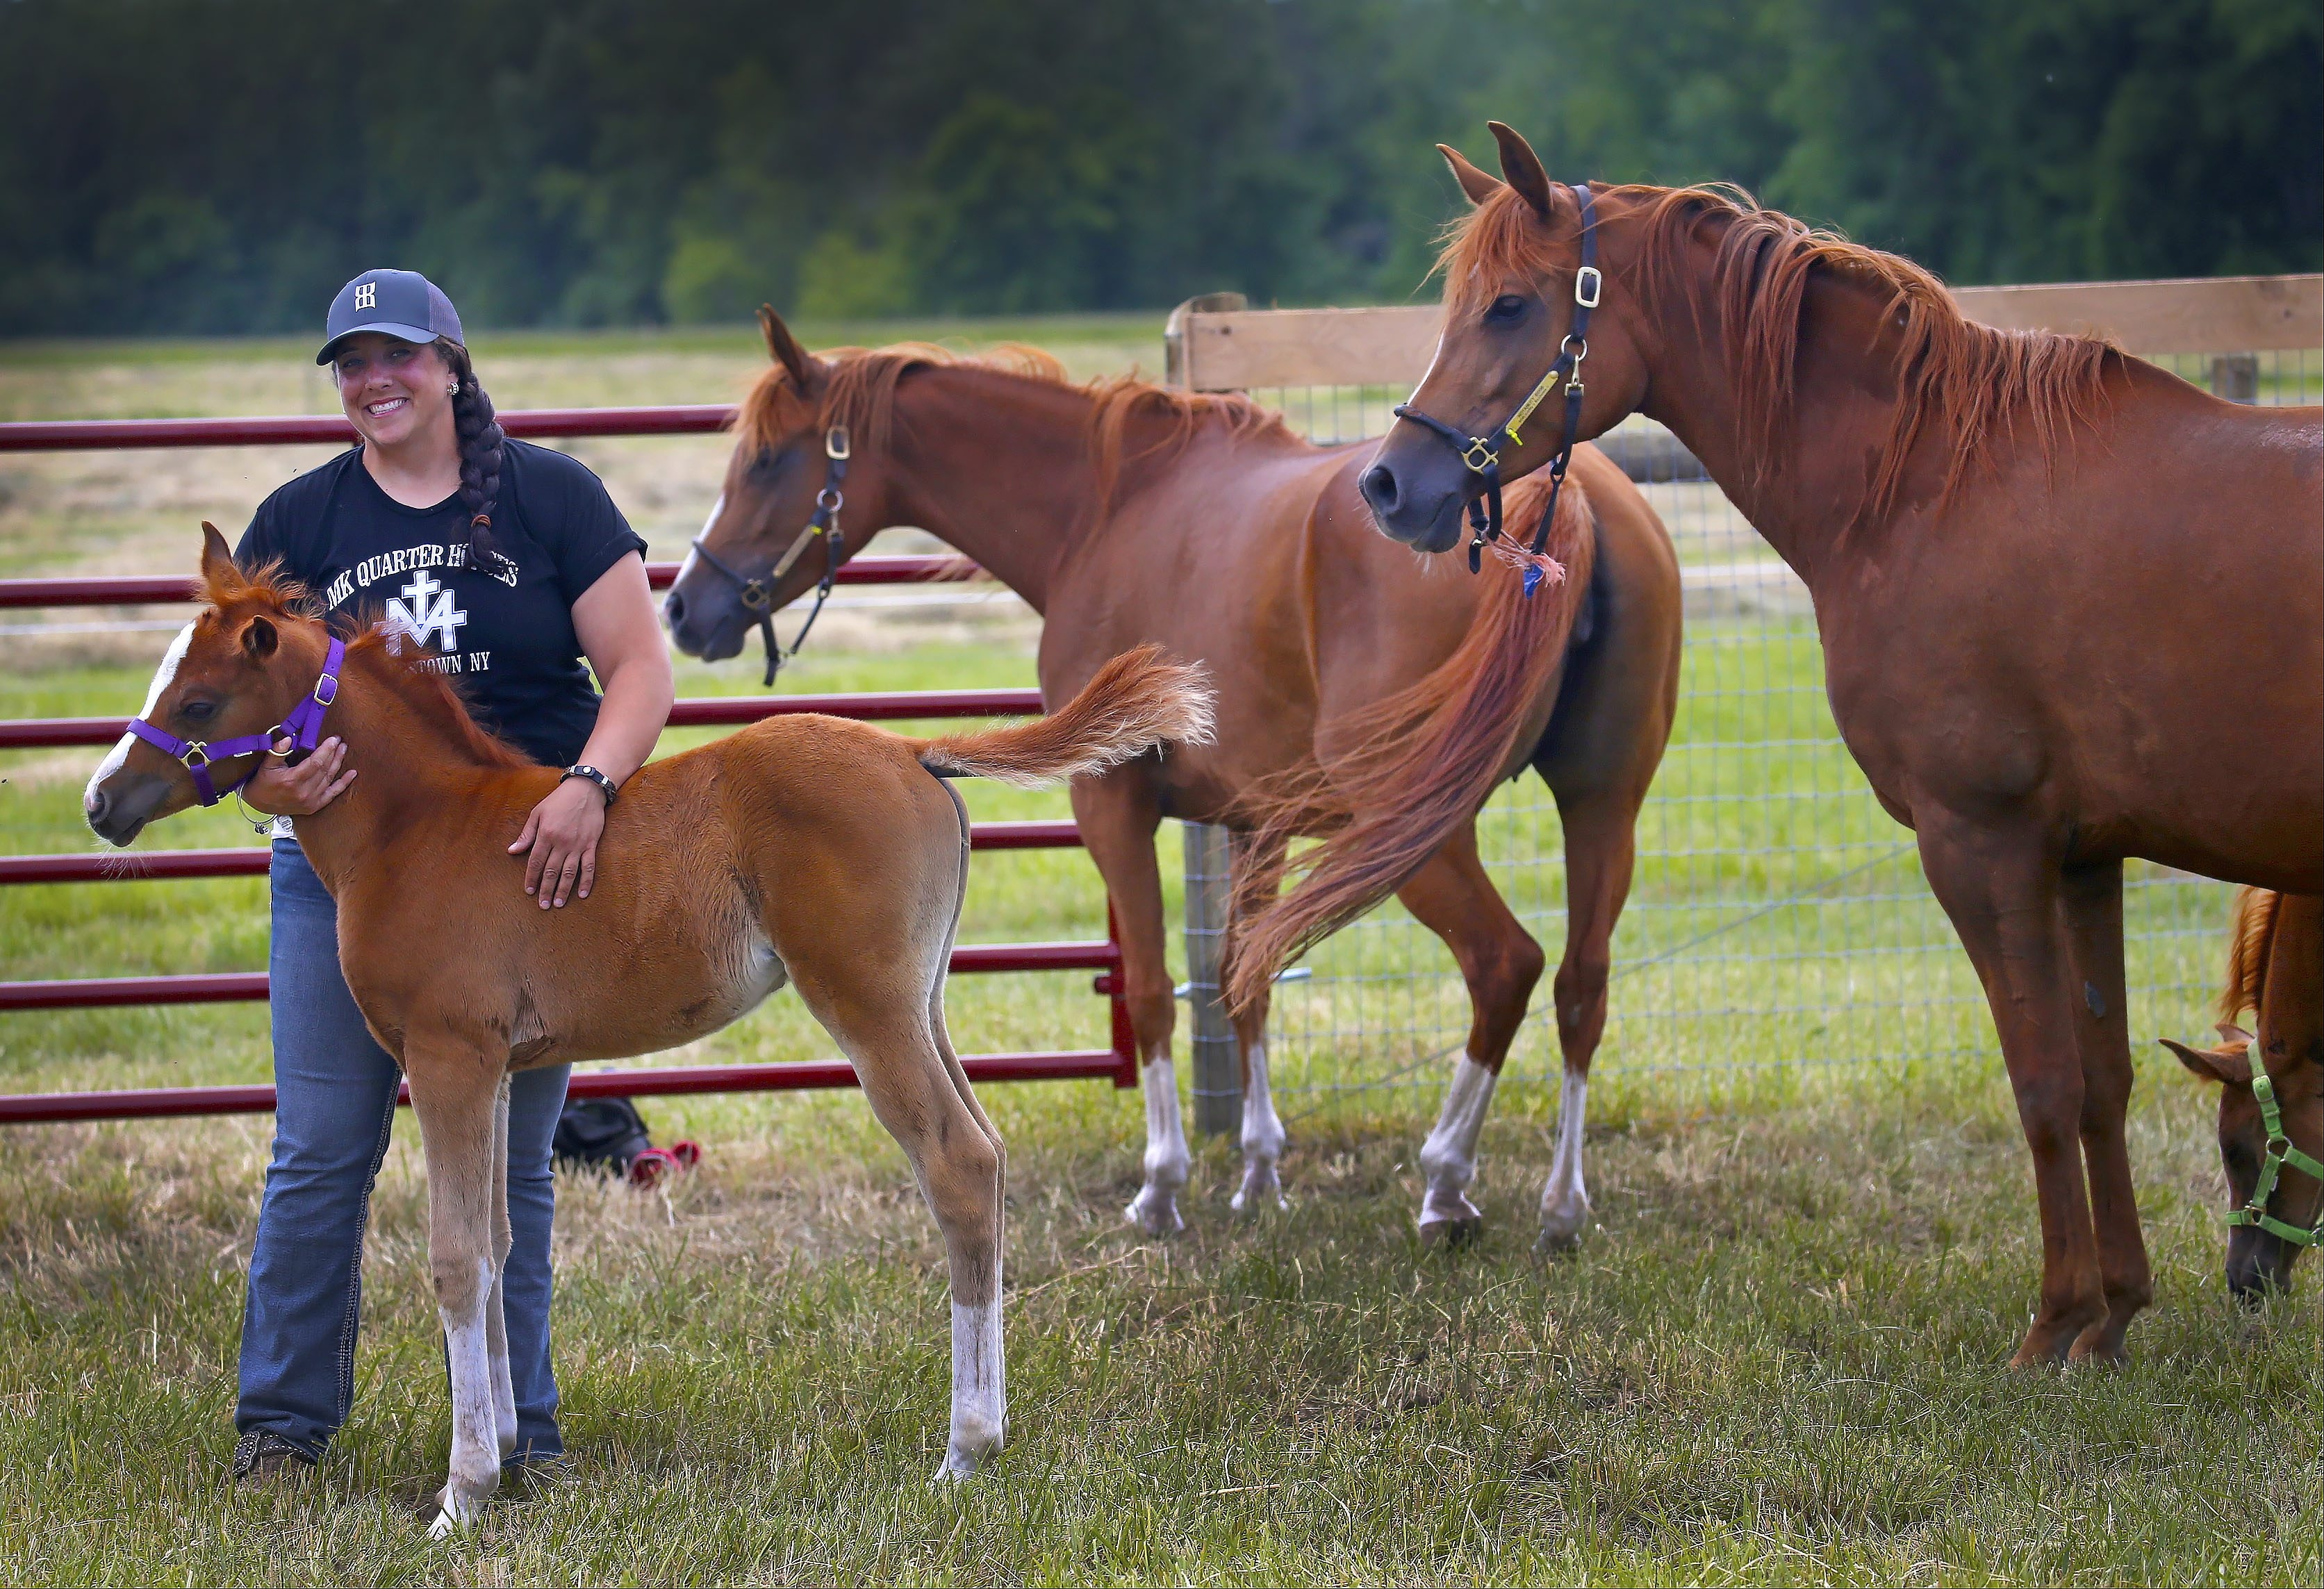 Melissa Koser, who started MK Quarter Horses in Youngstown more than a decade ago, purchased a 40-acre horse farm in Wilson last September.